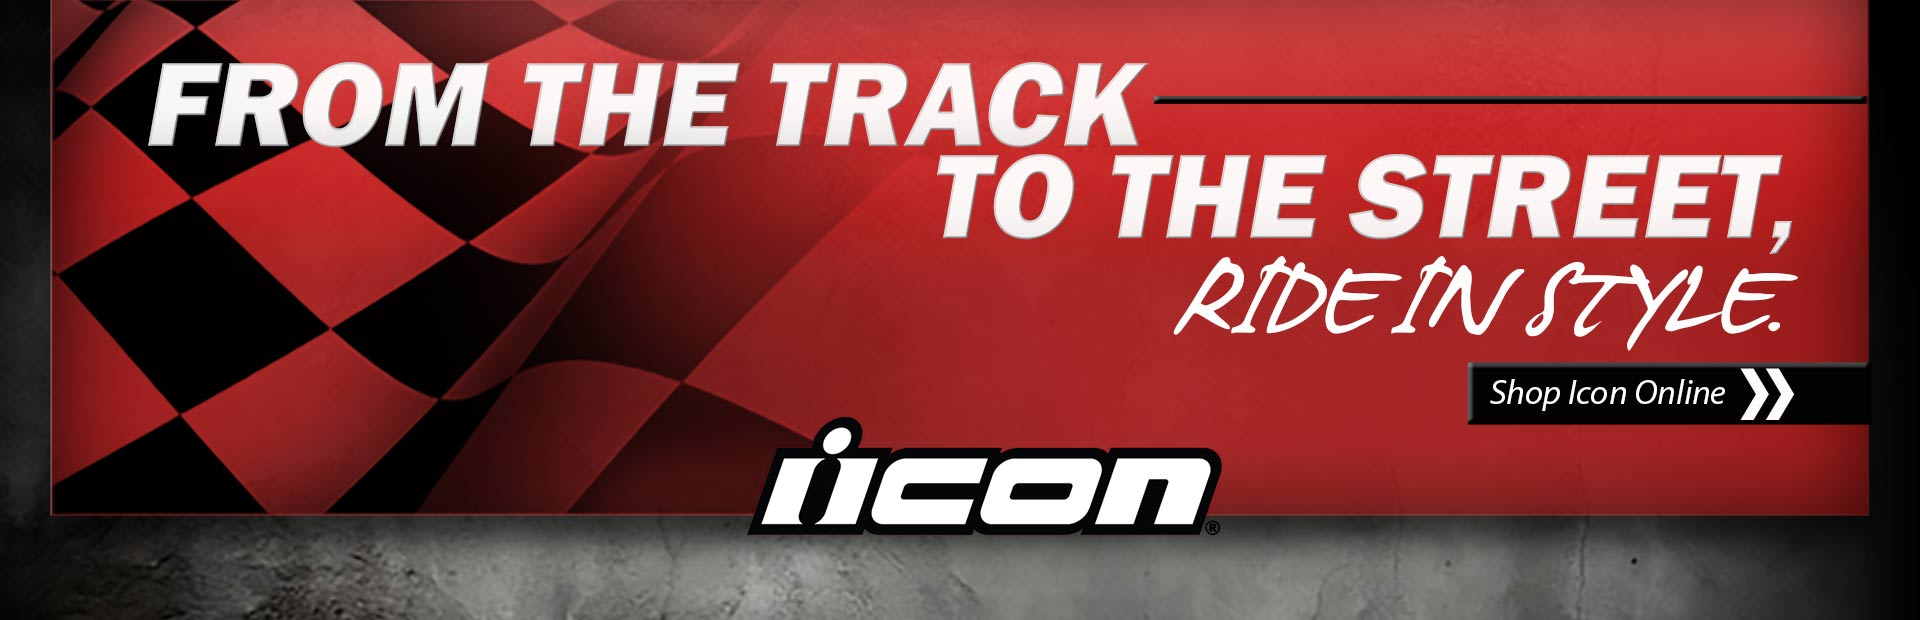 From the track to the street, ride in style. Click here to shop Icon online.